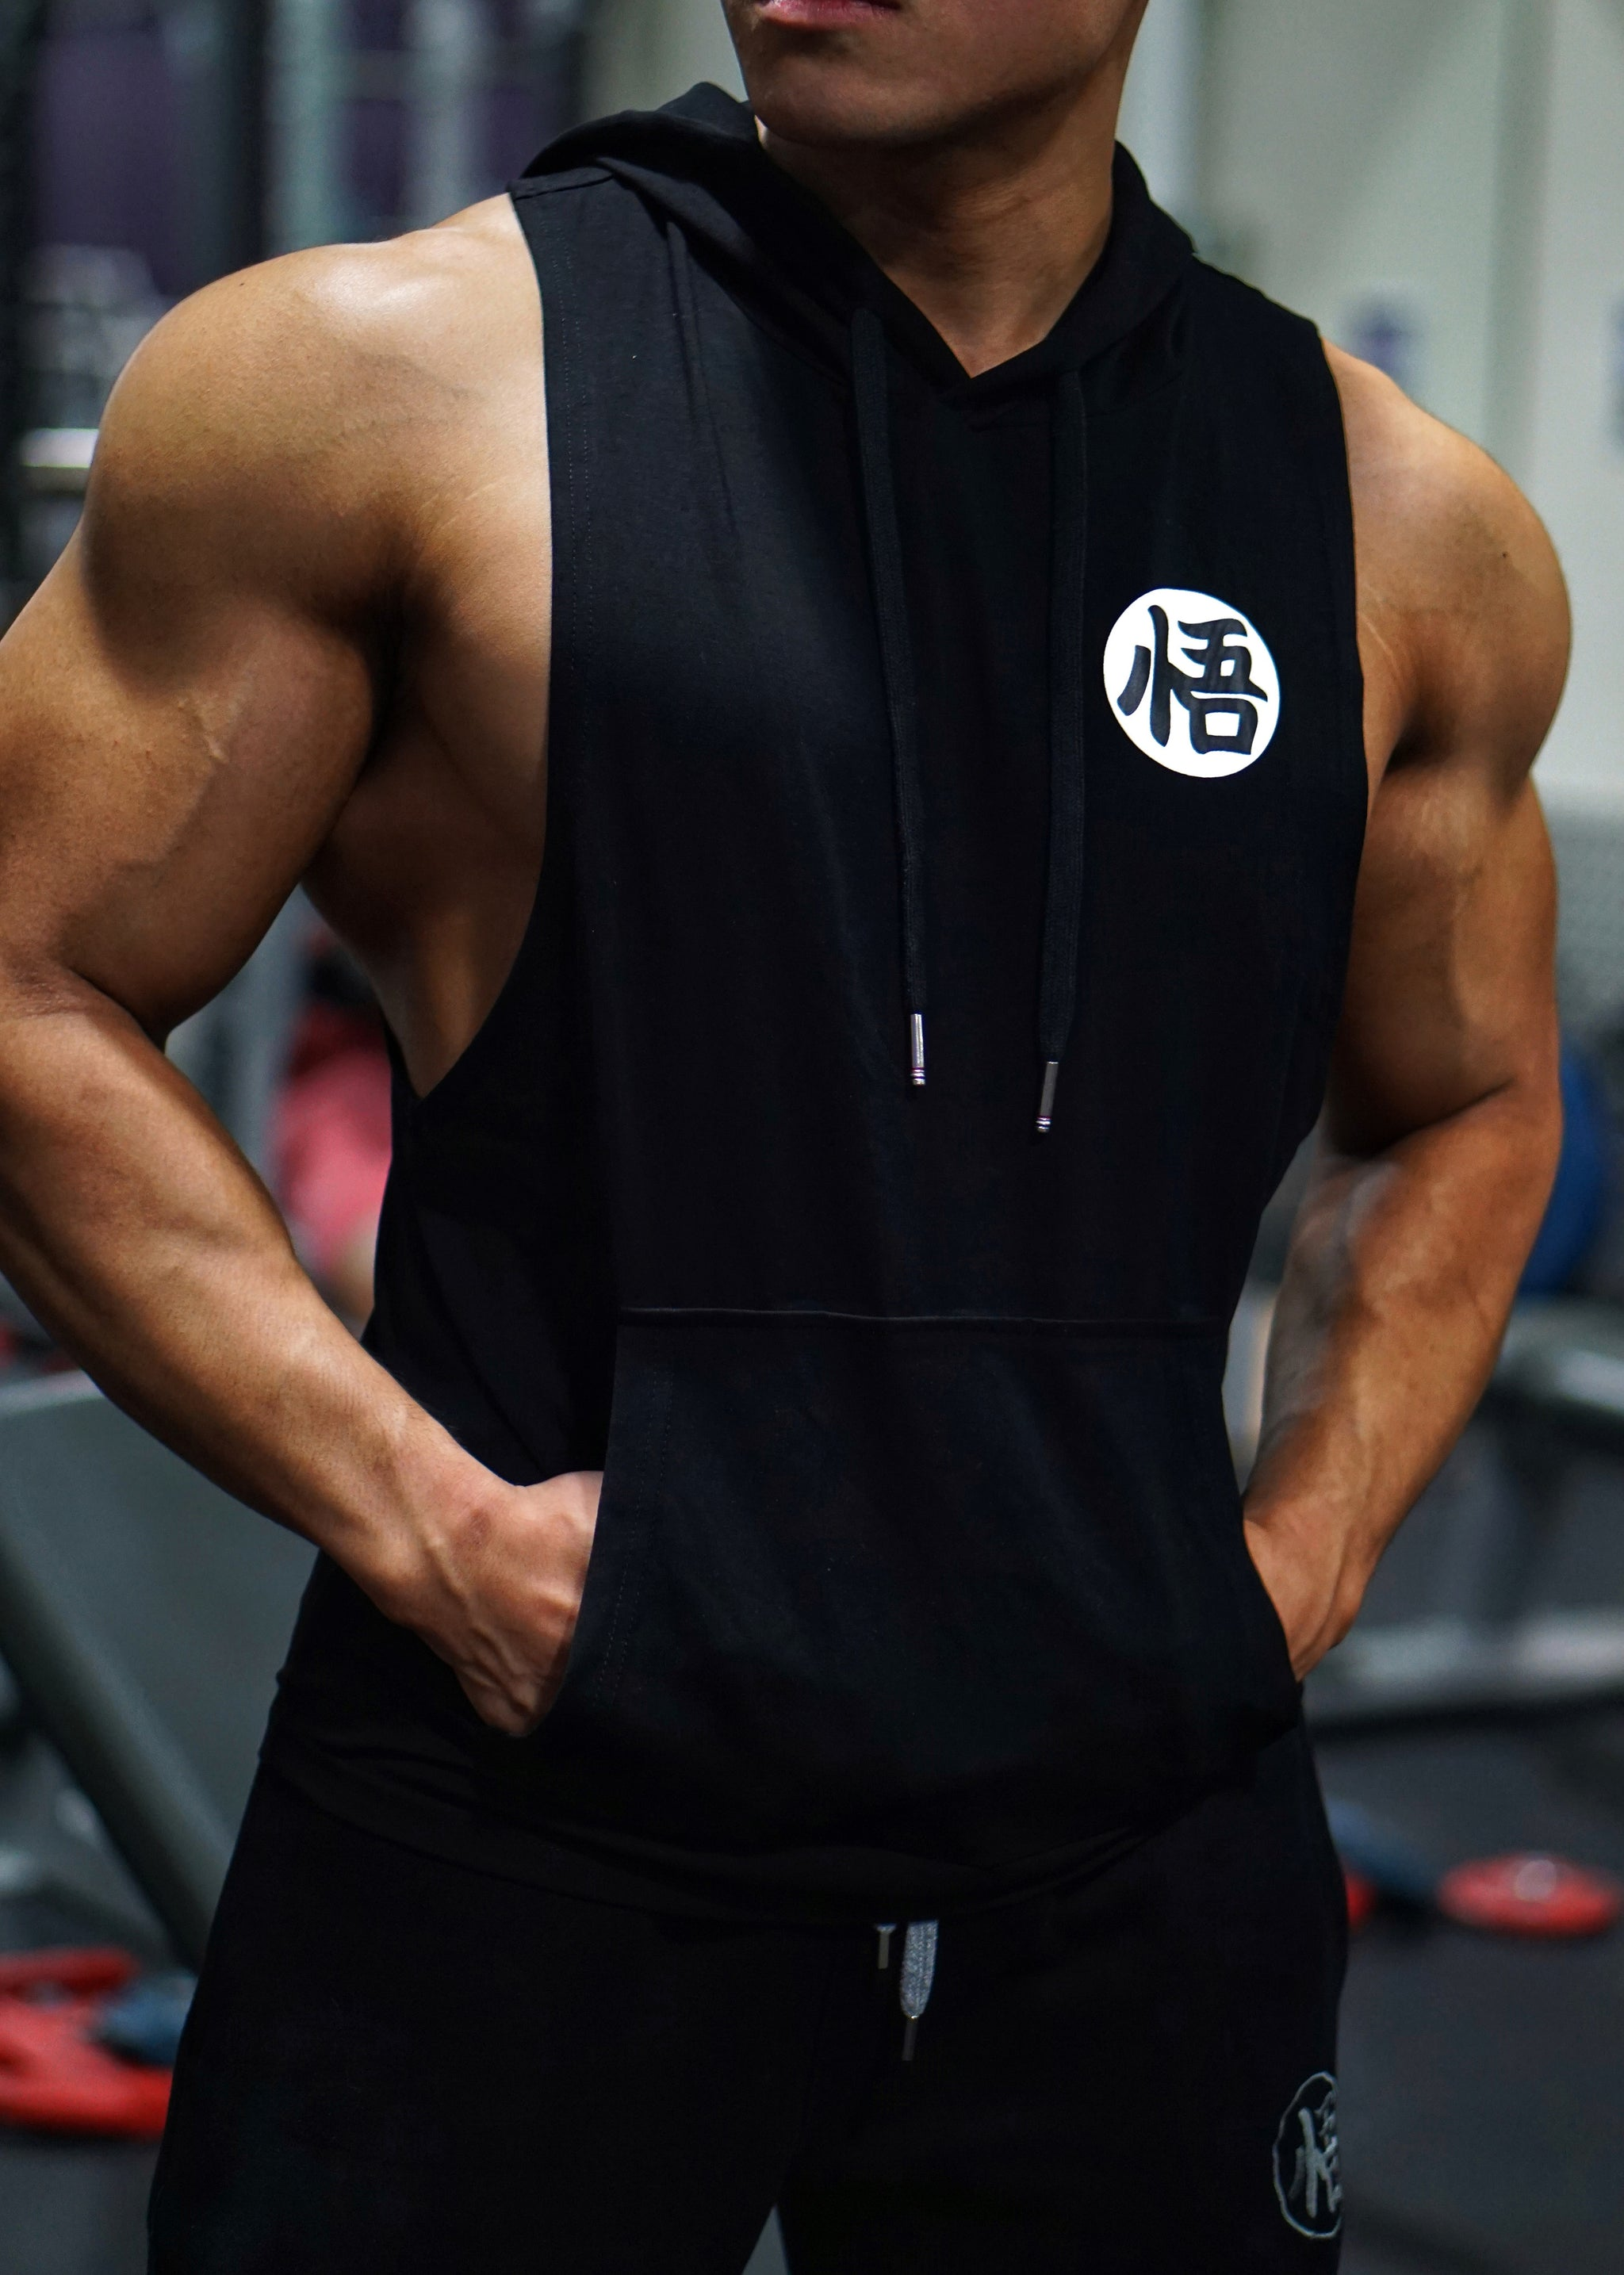 V2.0 Low Cut 'Ascension' Performance Sleeveless Hoodie - Elite Black